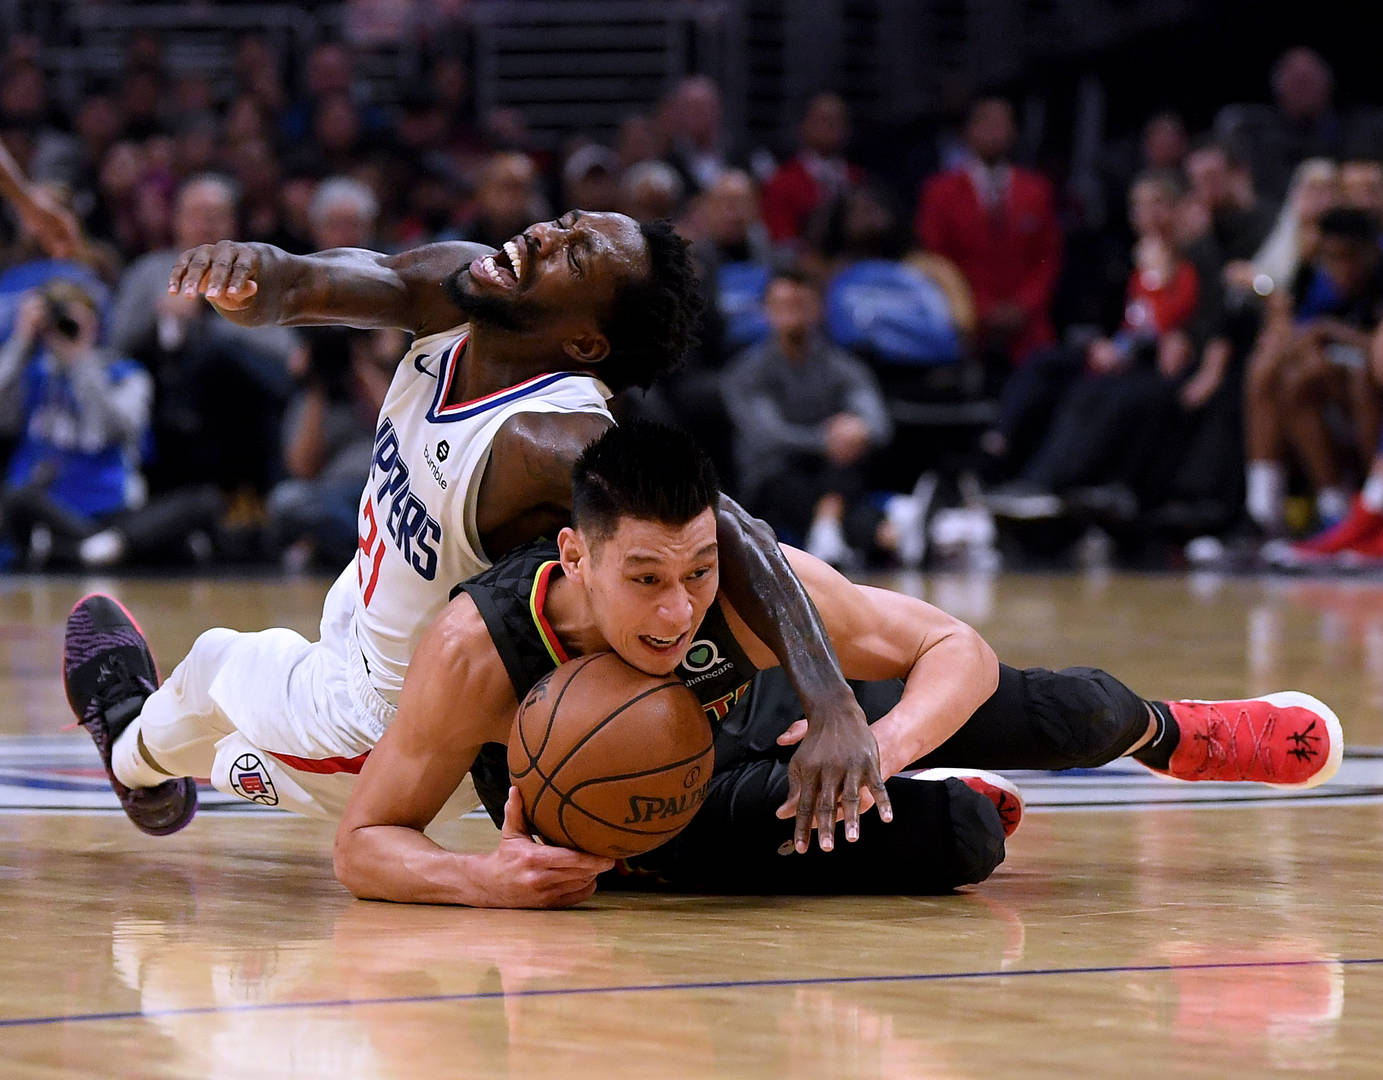 Jeremy Lin finalizing Exhibit 10 deal with Golden State Warriors